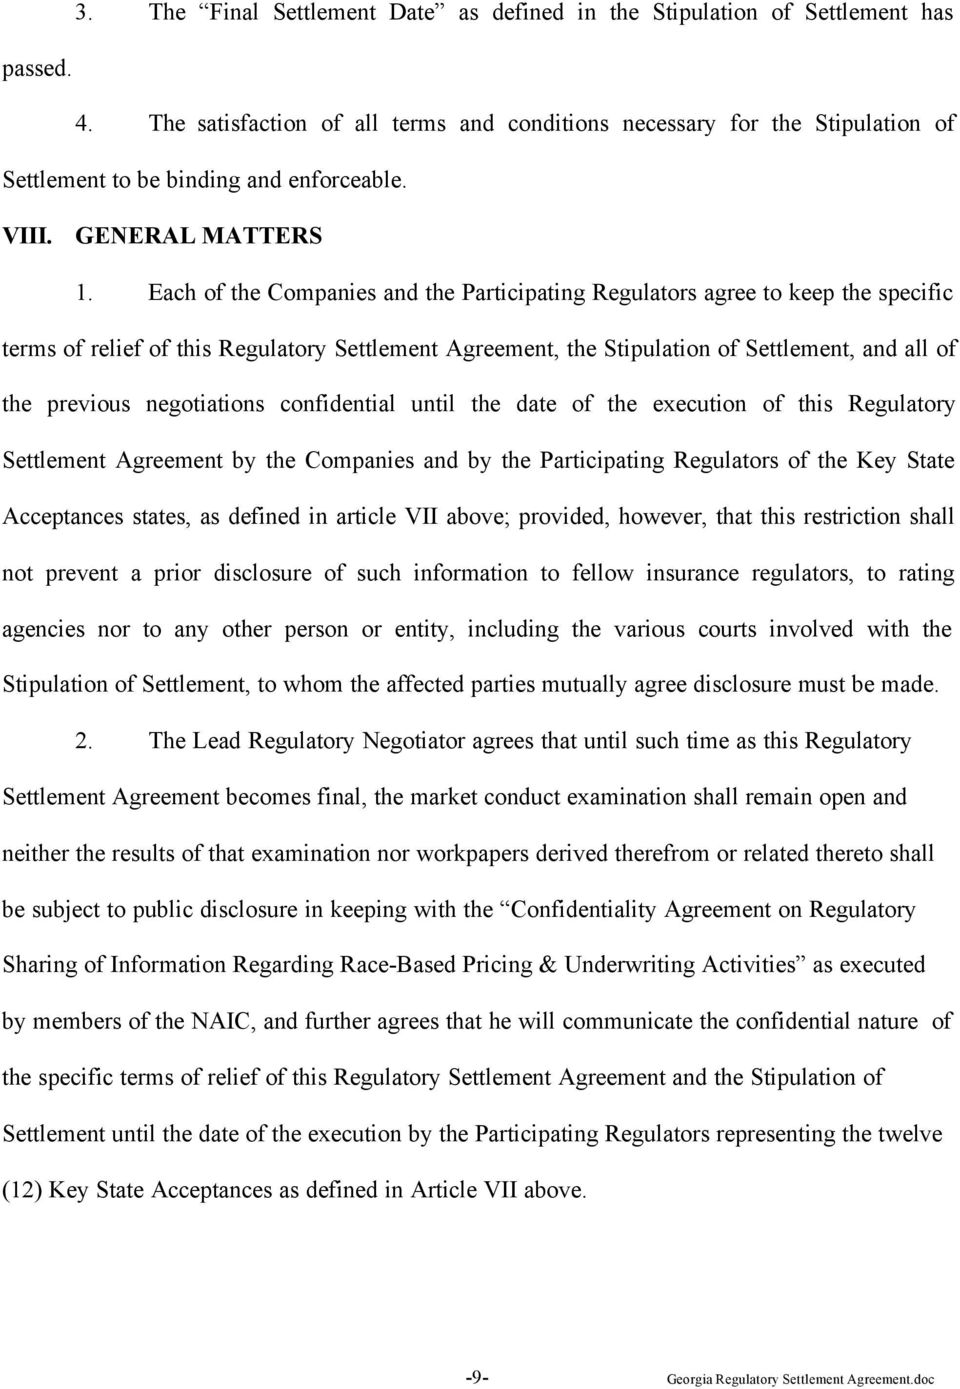 Each of the Companies and the Participating Regulators agree to keep the specific terms of relief of this Regulatory Settlement Agreement, the Stipulation of Settlement, and all of the previous